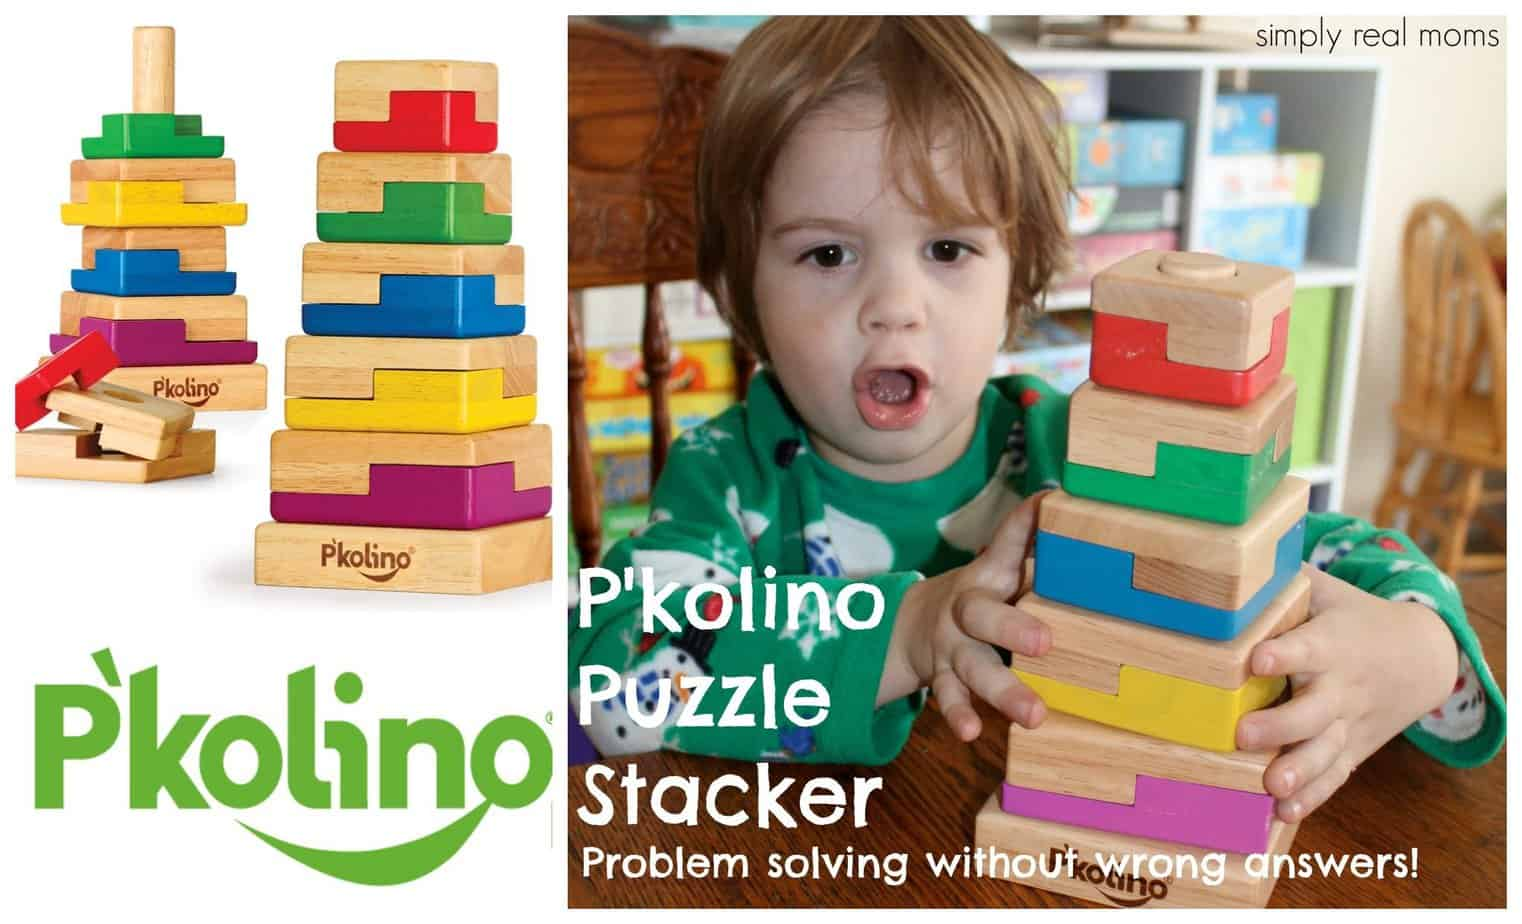 P'kolino Puzzle Stacker-Problem solving without wrong answers! 1